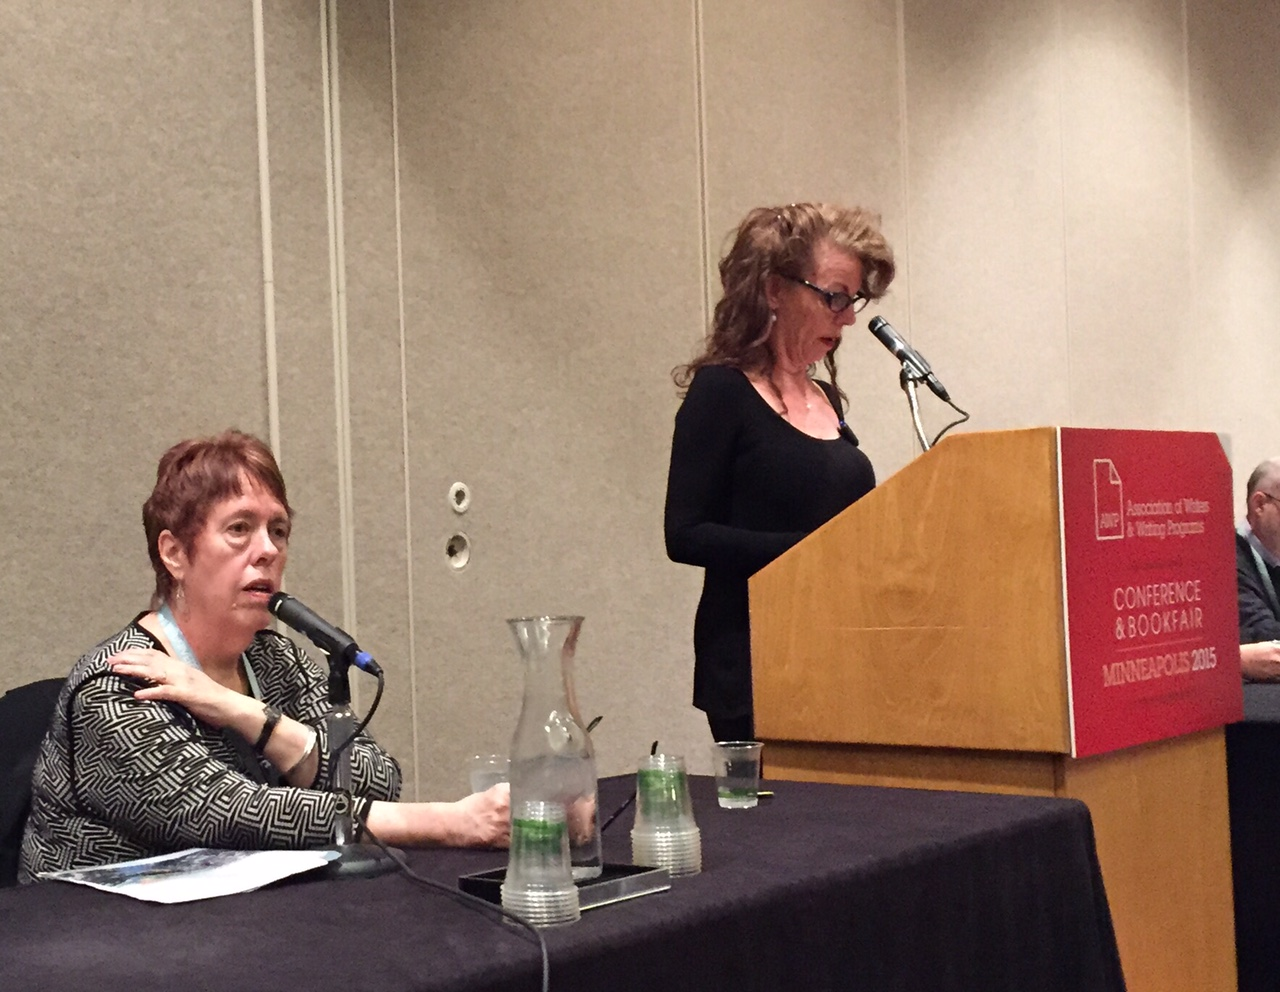 Fox Gordon and Debra Monroe discuss the tricky minefield of writing about others.